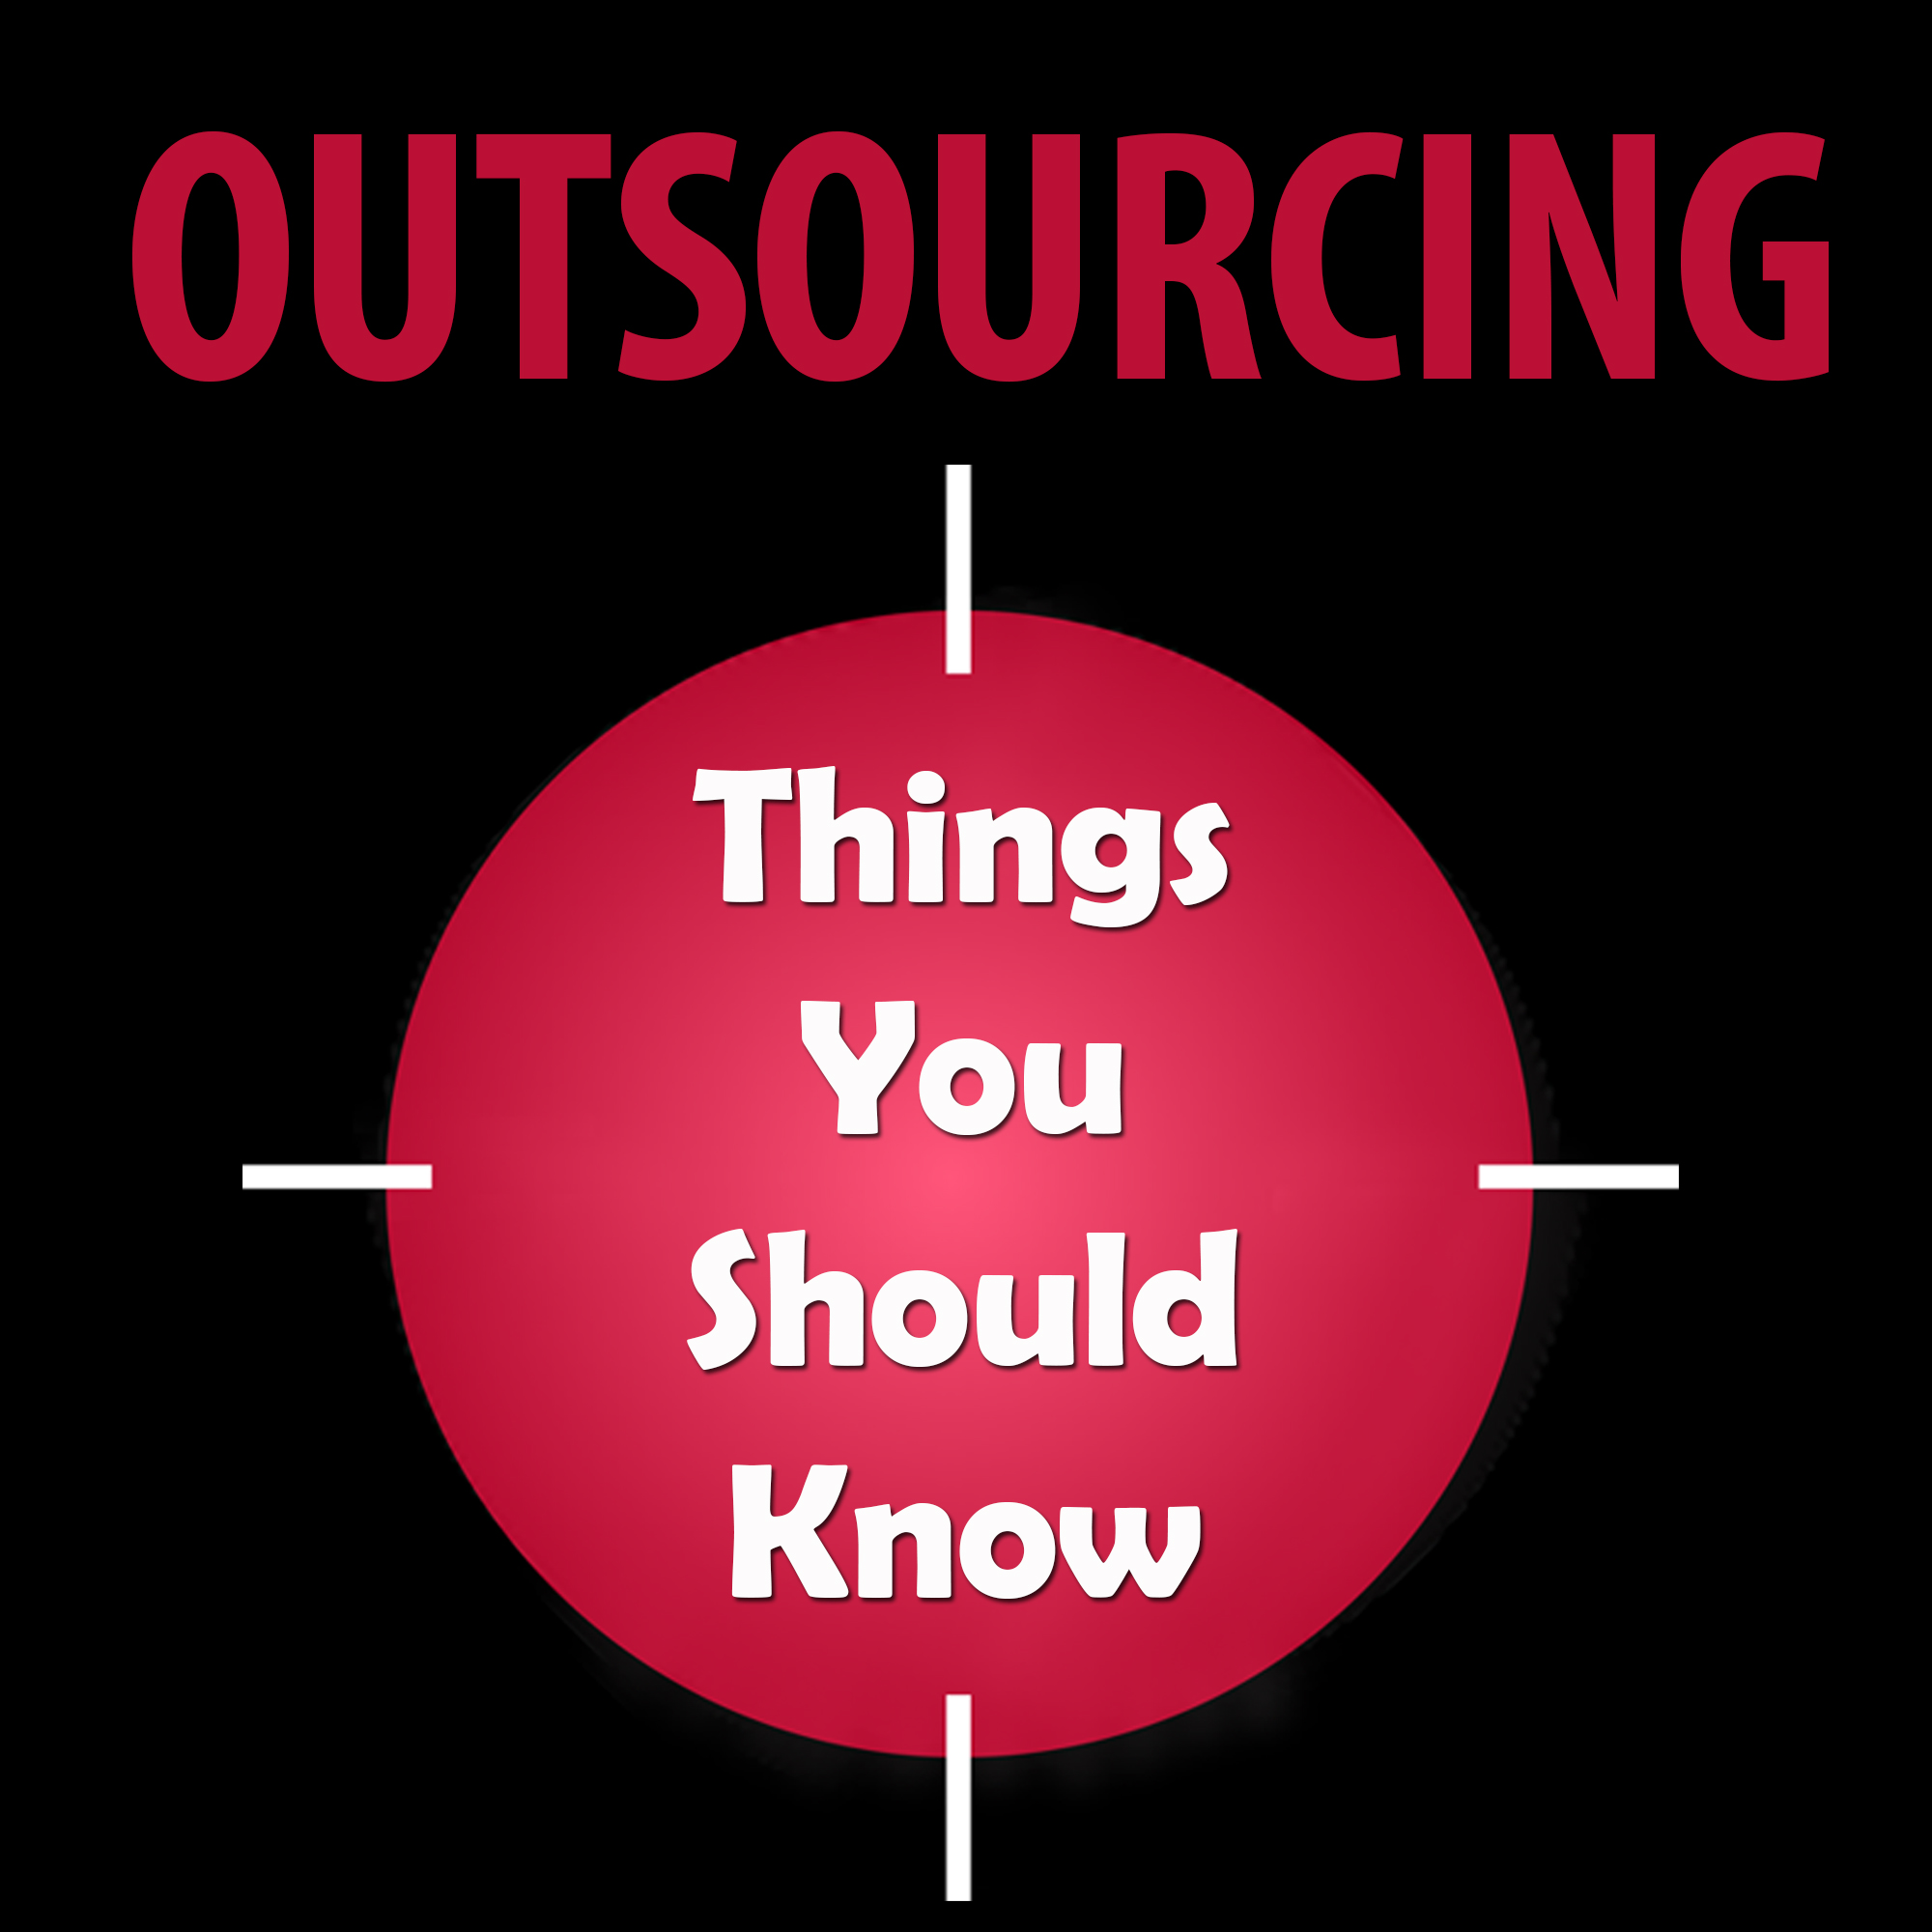 Outsourcing Things You Should Know